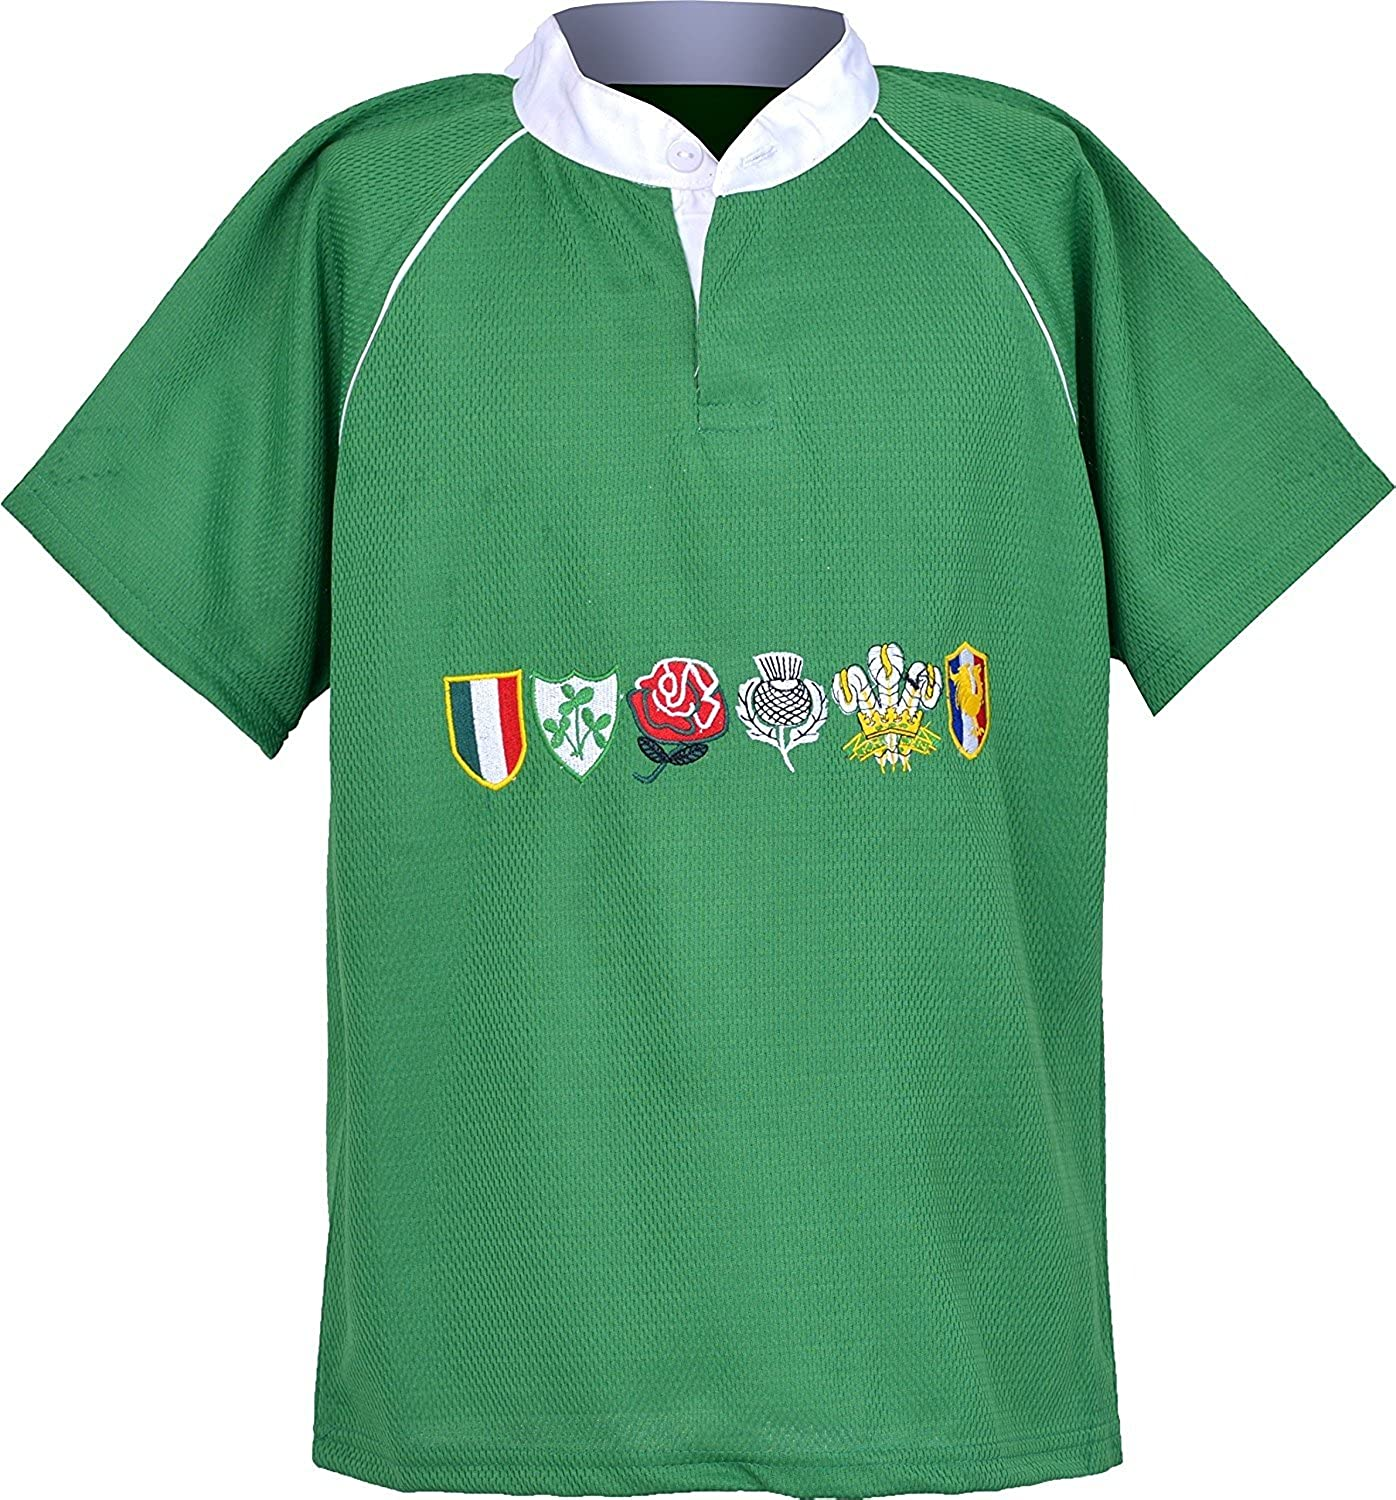 Activewear Children 6 Nation Rugby Shirts Size 3/4Y to 11/12 Year (S 3/4Y, EMERED Green) NMK6NRS01